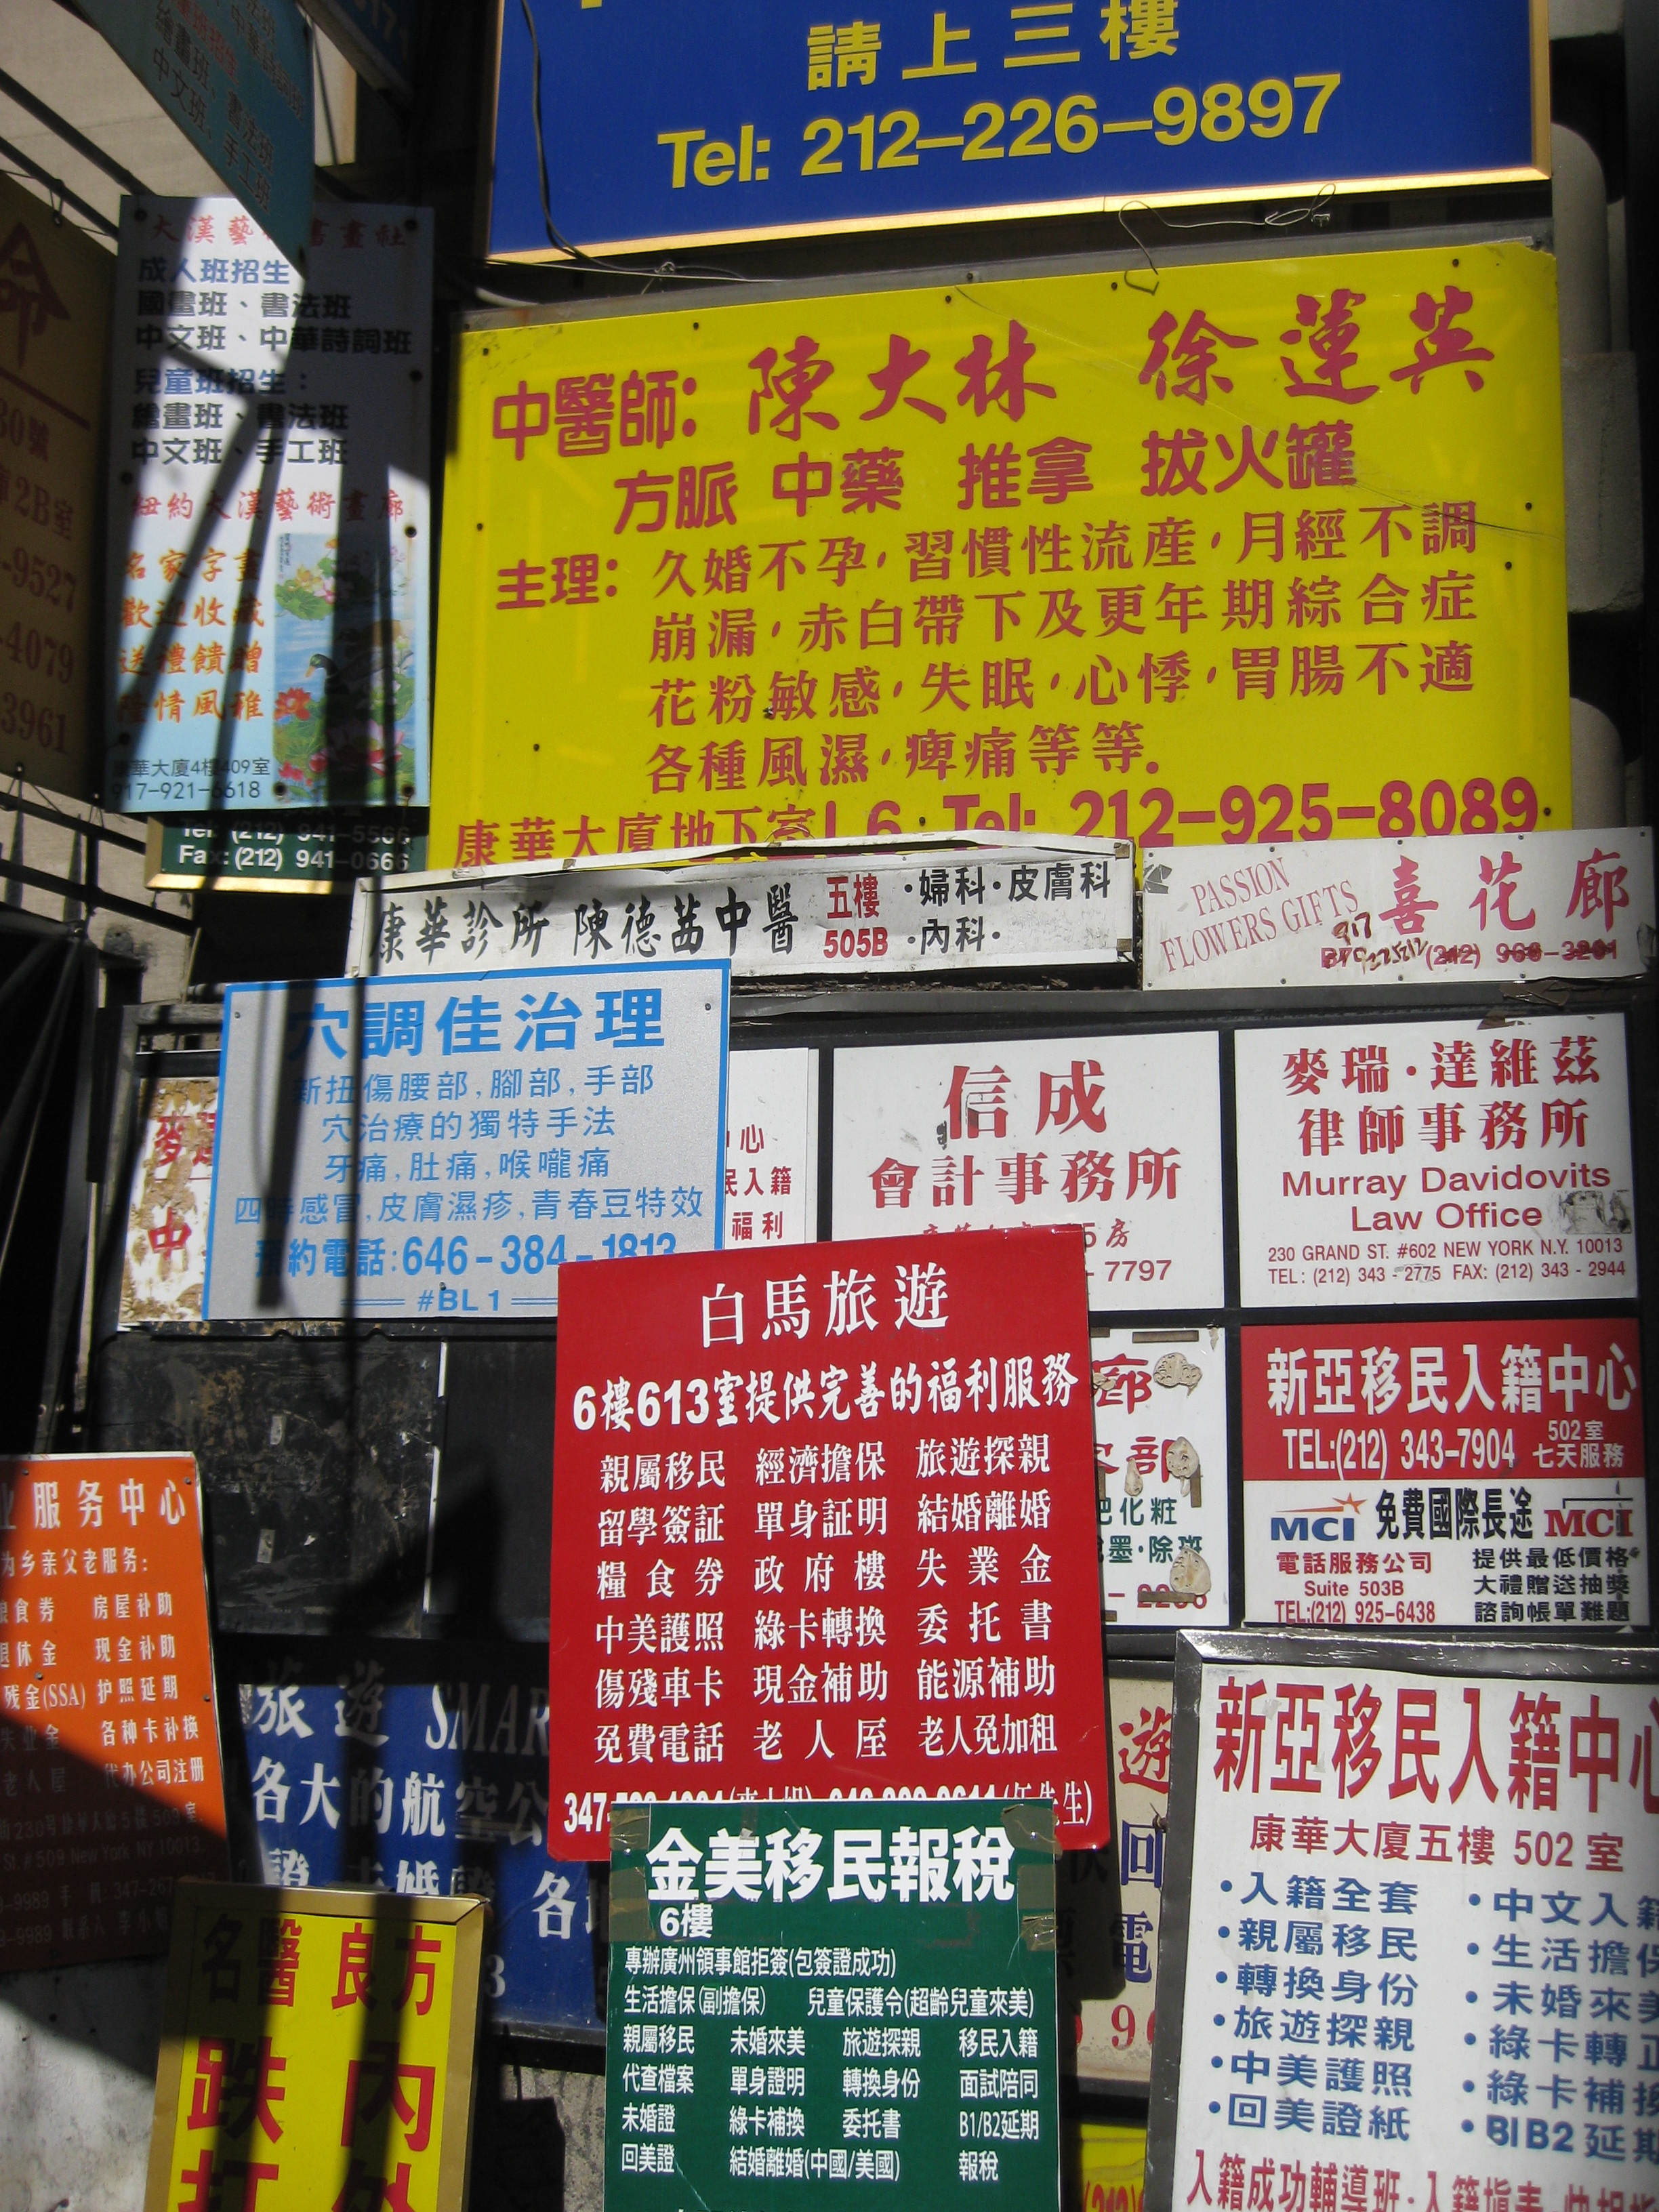 The cluttered entrance to a Chinatown shopping arcade.  Clearly the target audience is not English-speakers.